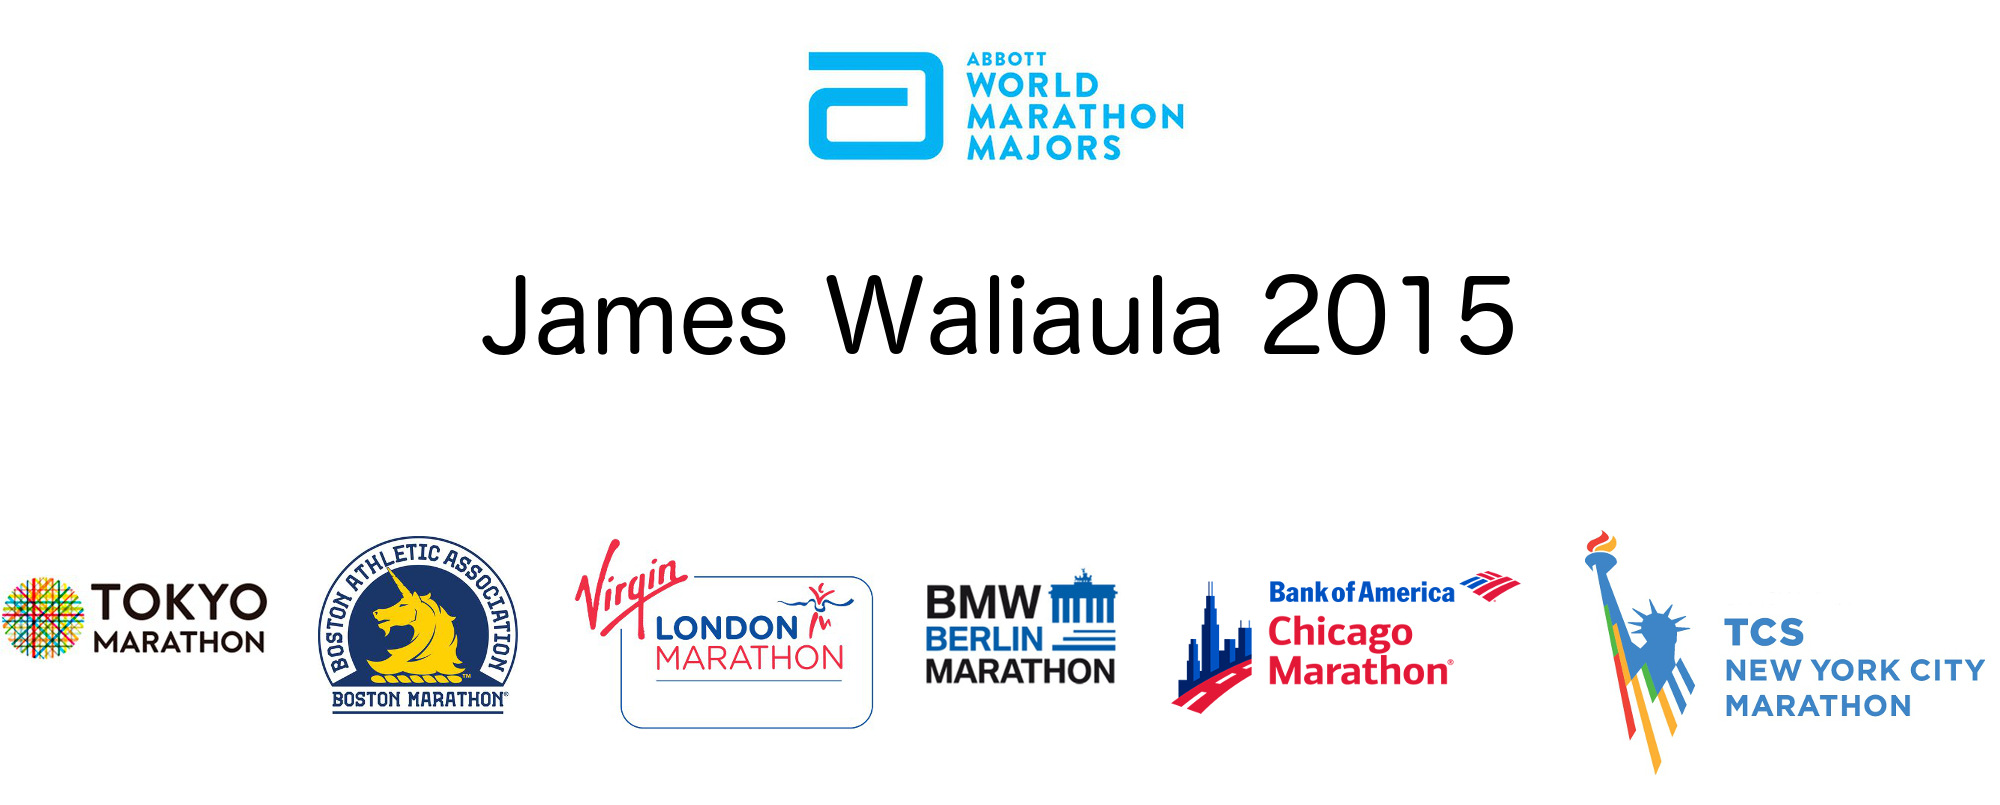 World Marathon Majors Finishers - Urban Swaras